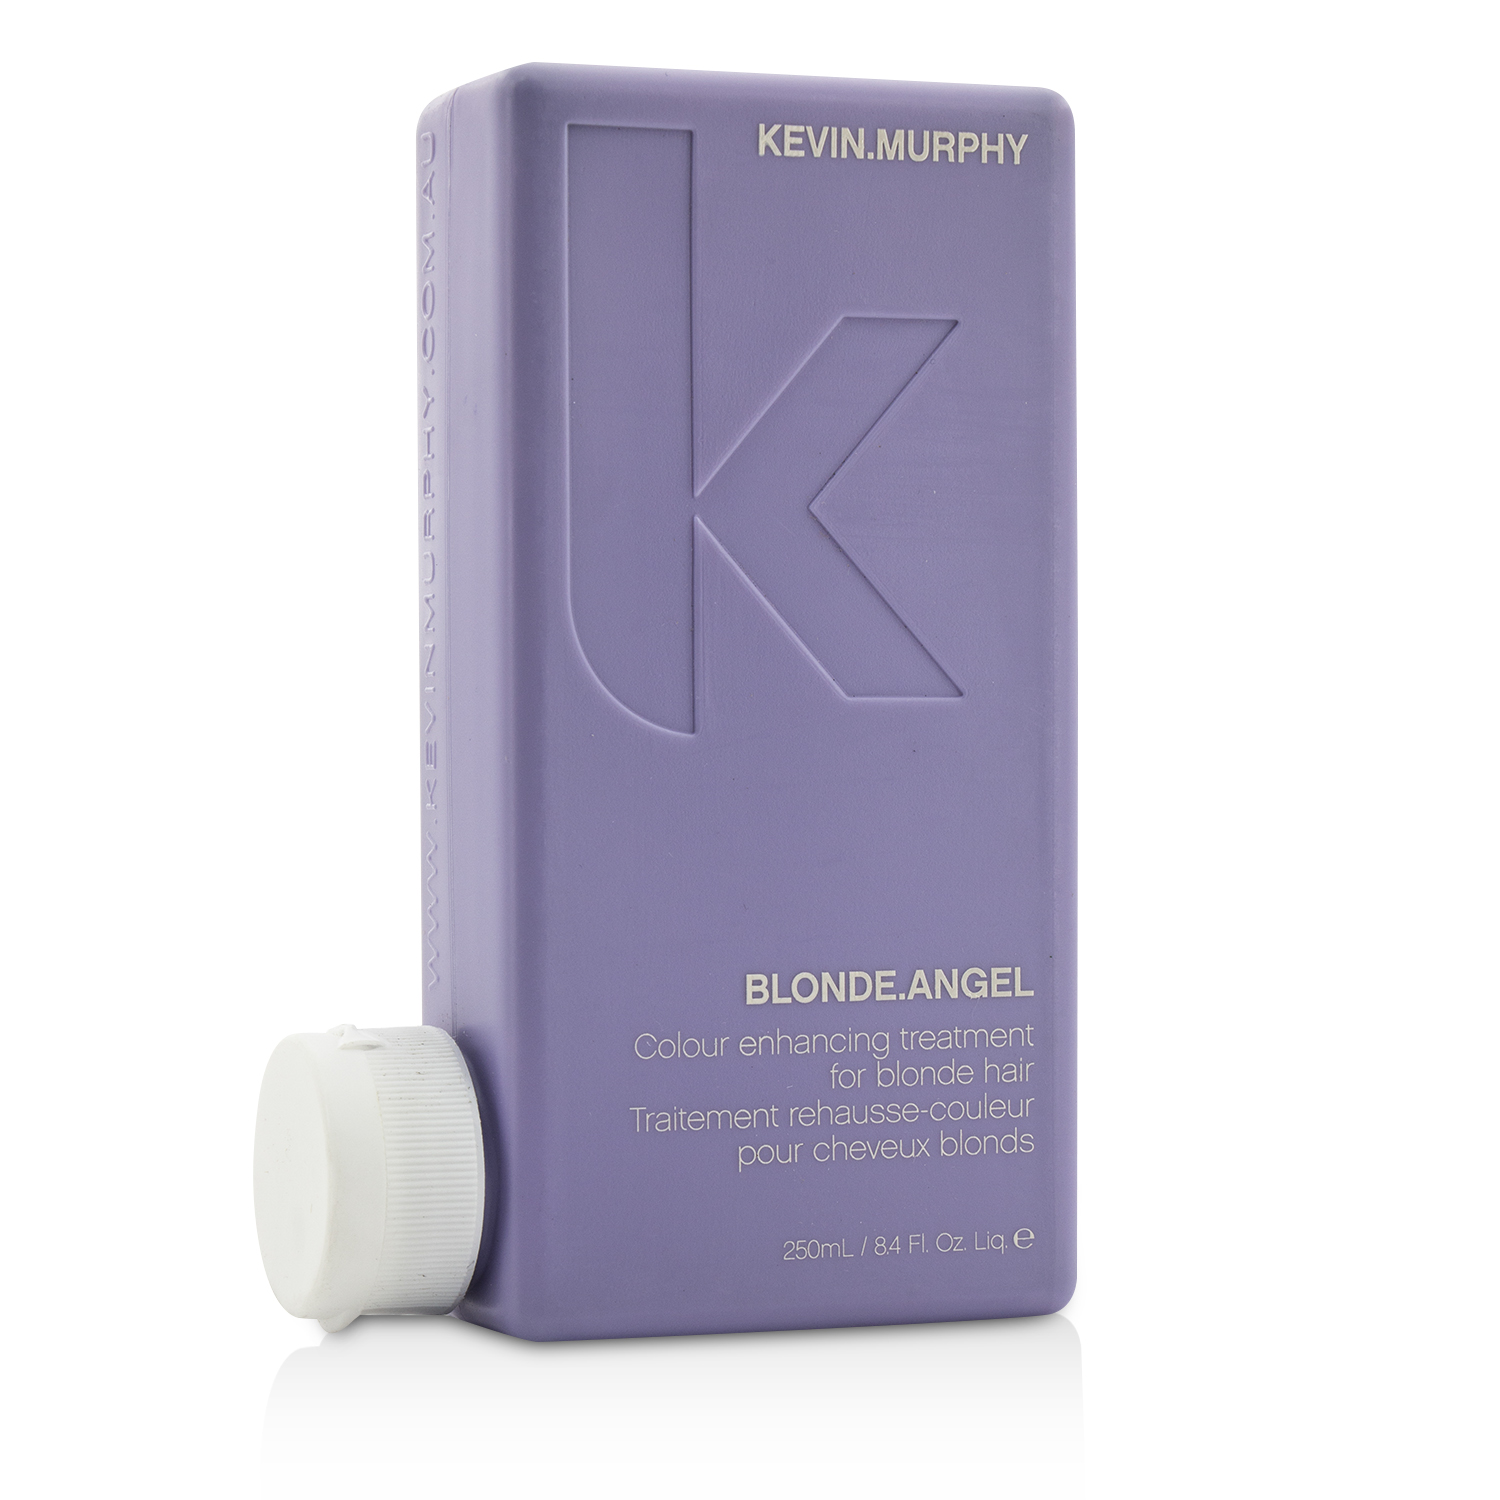 Blonde.Angel Colour Enhancing Treatment (For Blonde Hair) Kevin.Murphy Image